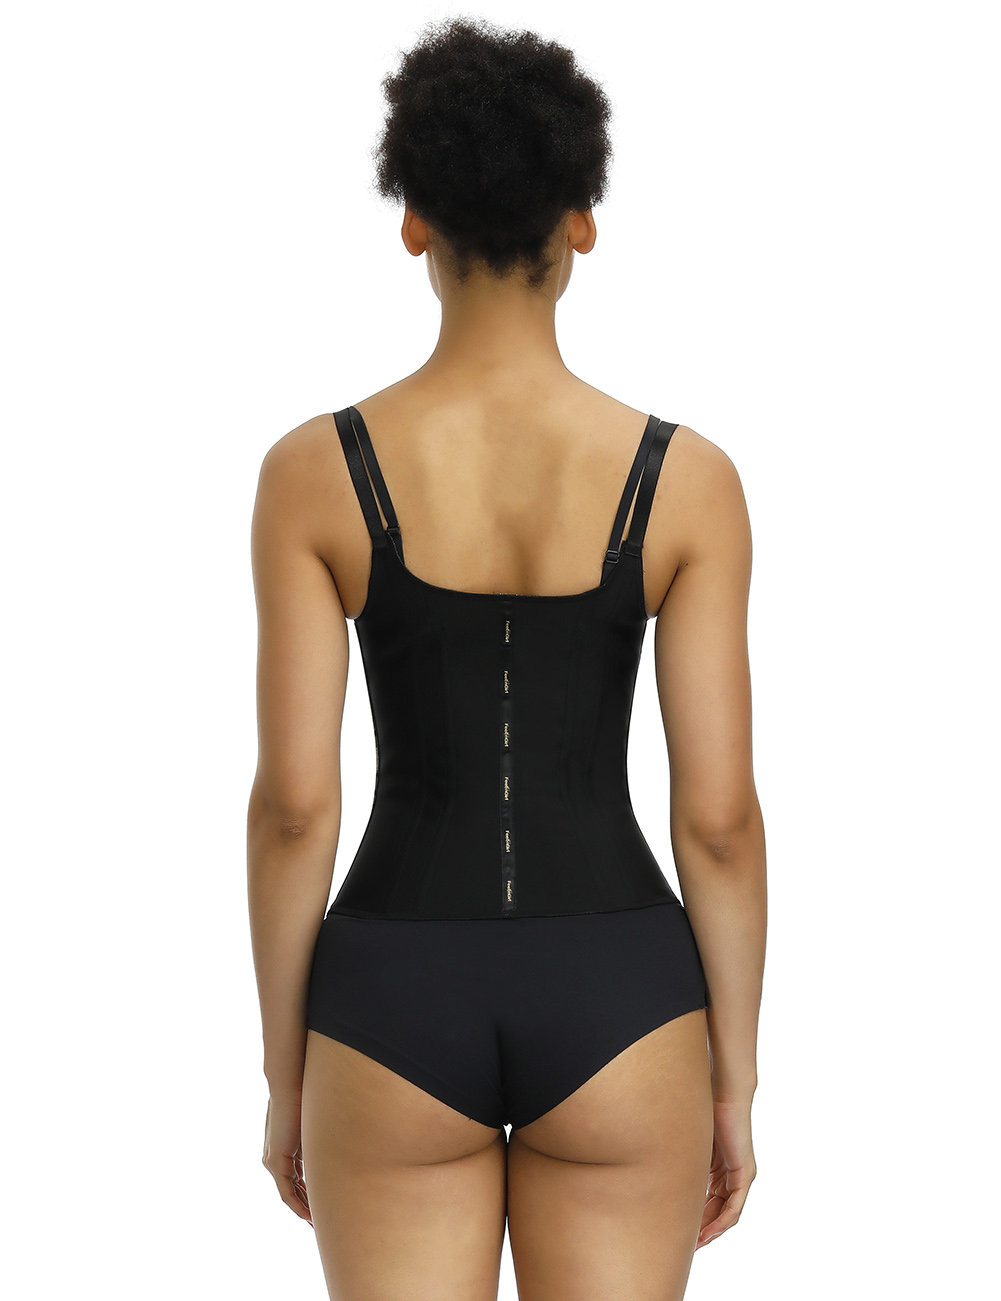 //cdn.affectcloud.com/hexinfashion/upload/imgs/SHAPEWEAR/Tanks_Camis/MT190017-BK1/MT190017-BK1-201911215dd62f1f0aec0.jpg